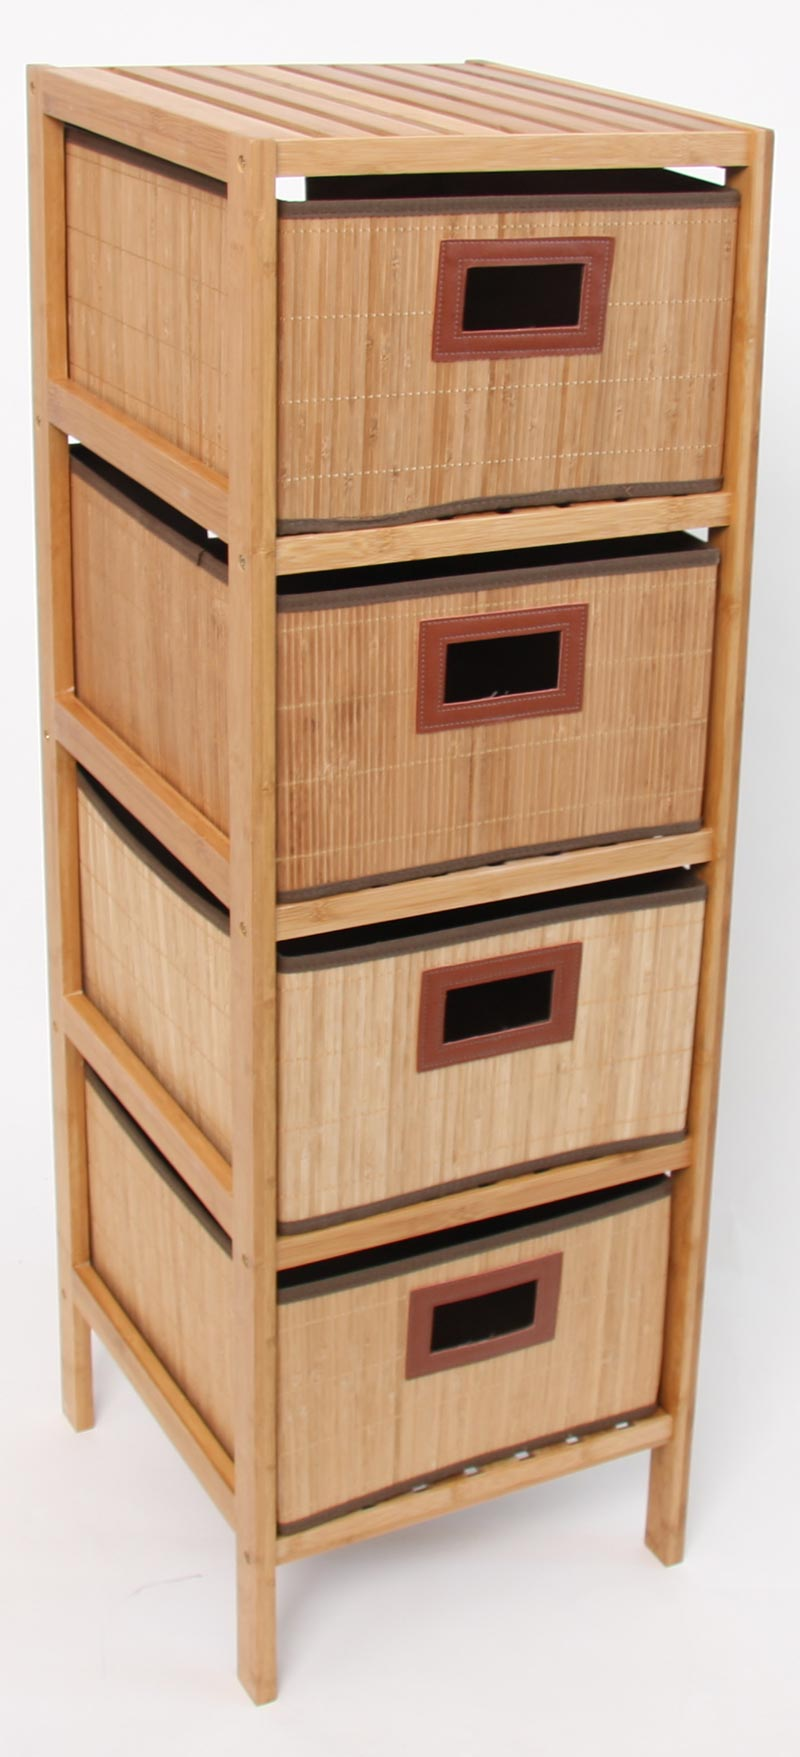 standregal regal kommode schrank aus bambusholz mit 4 boxen schubladen ebay. Black Bedroom Furniture Sets. Home Design Ideas